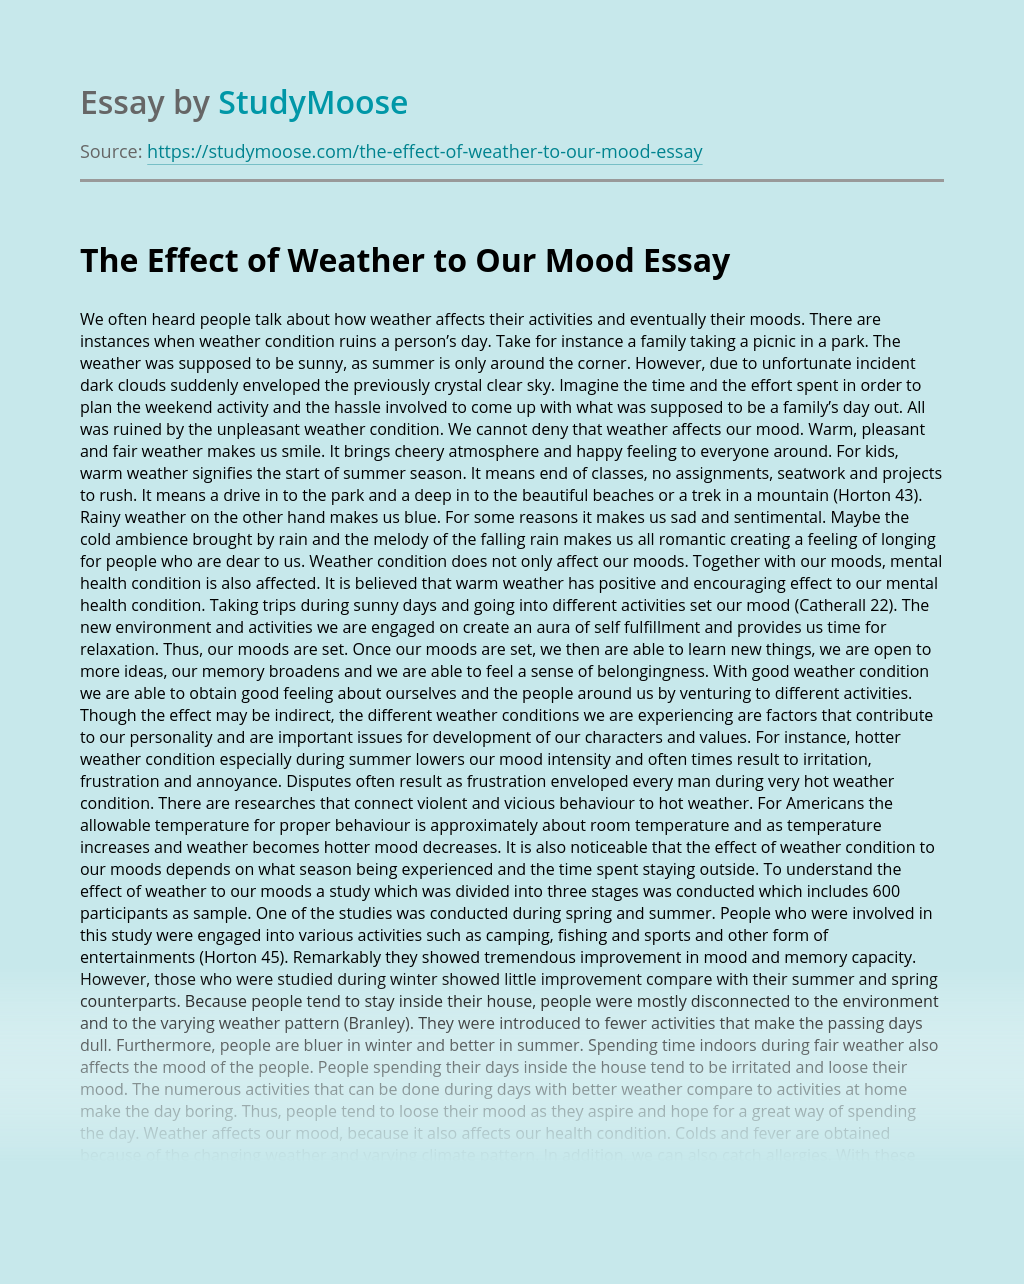 The Effect of Weather to Our Mood